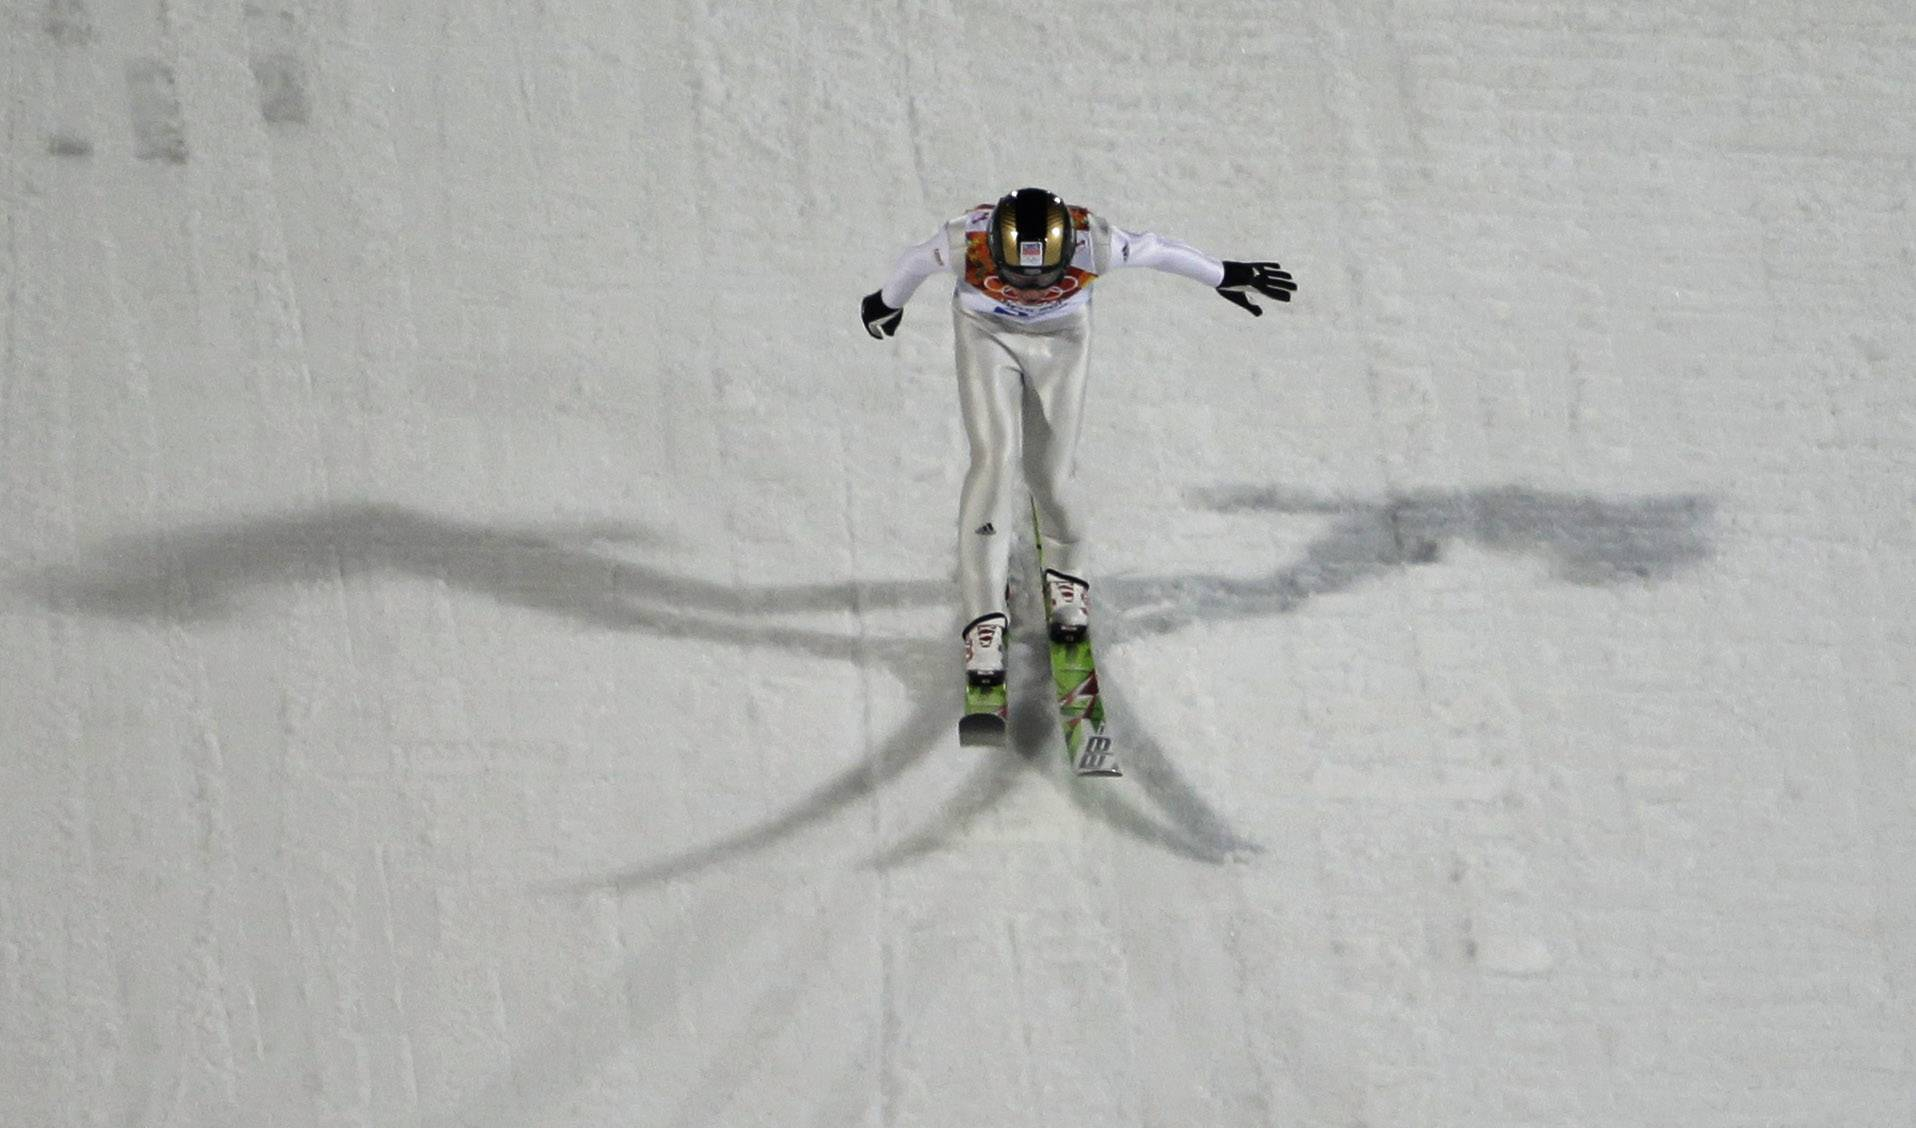 Czech Republic's Antonin  Hajek lands his attempt during the ski jumping large hill qualification.